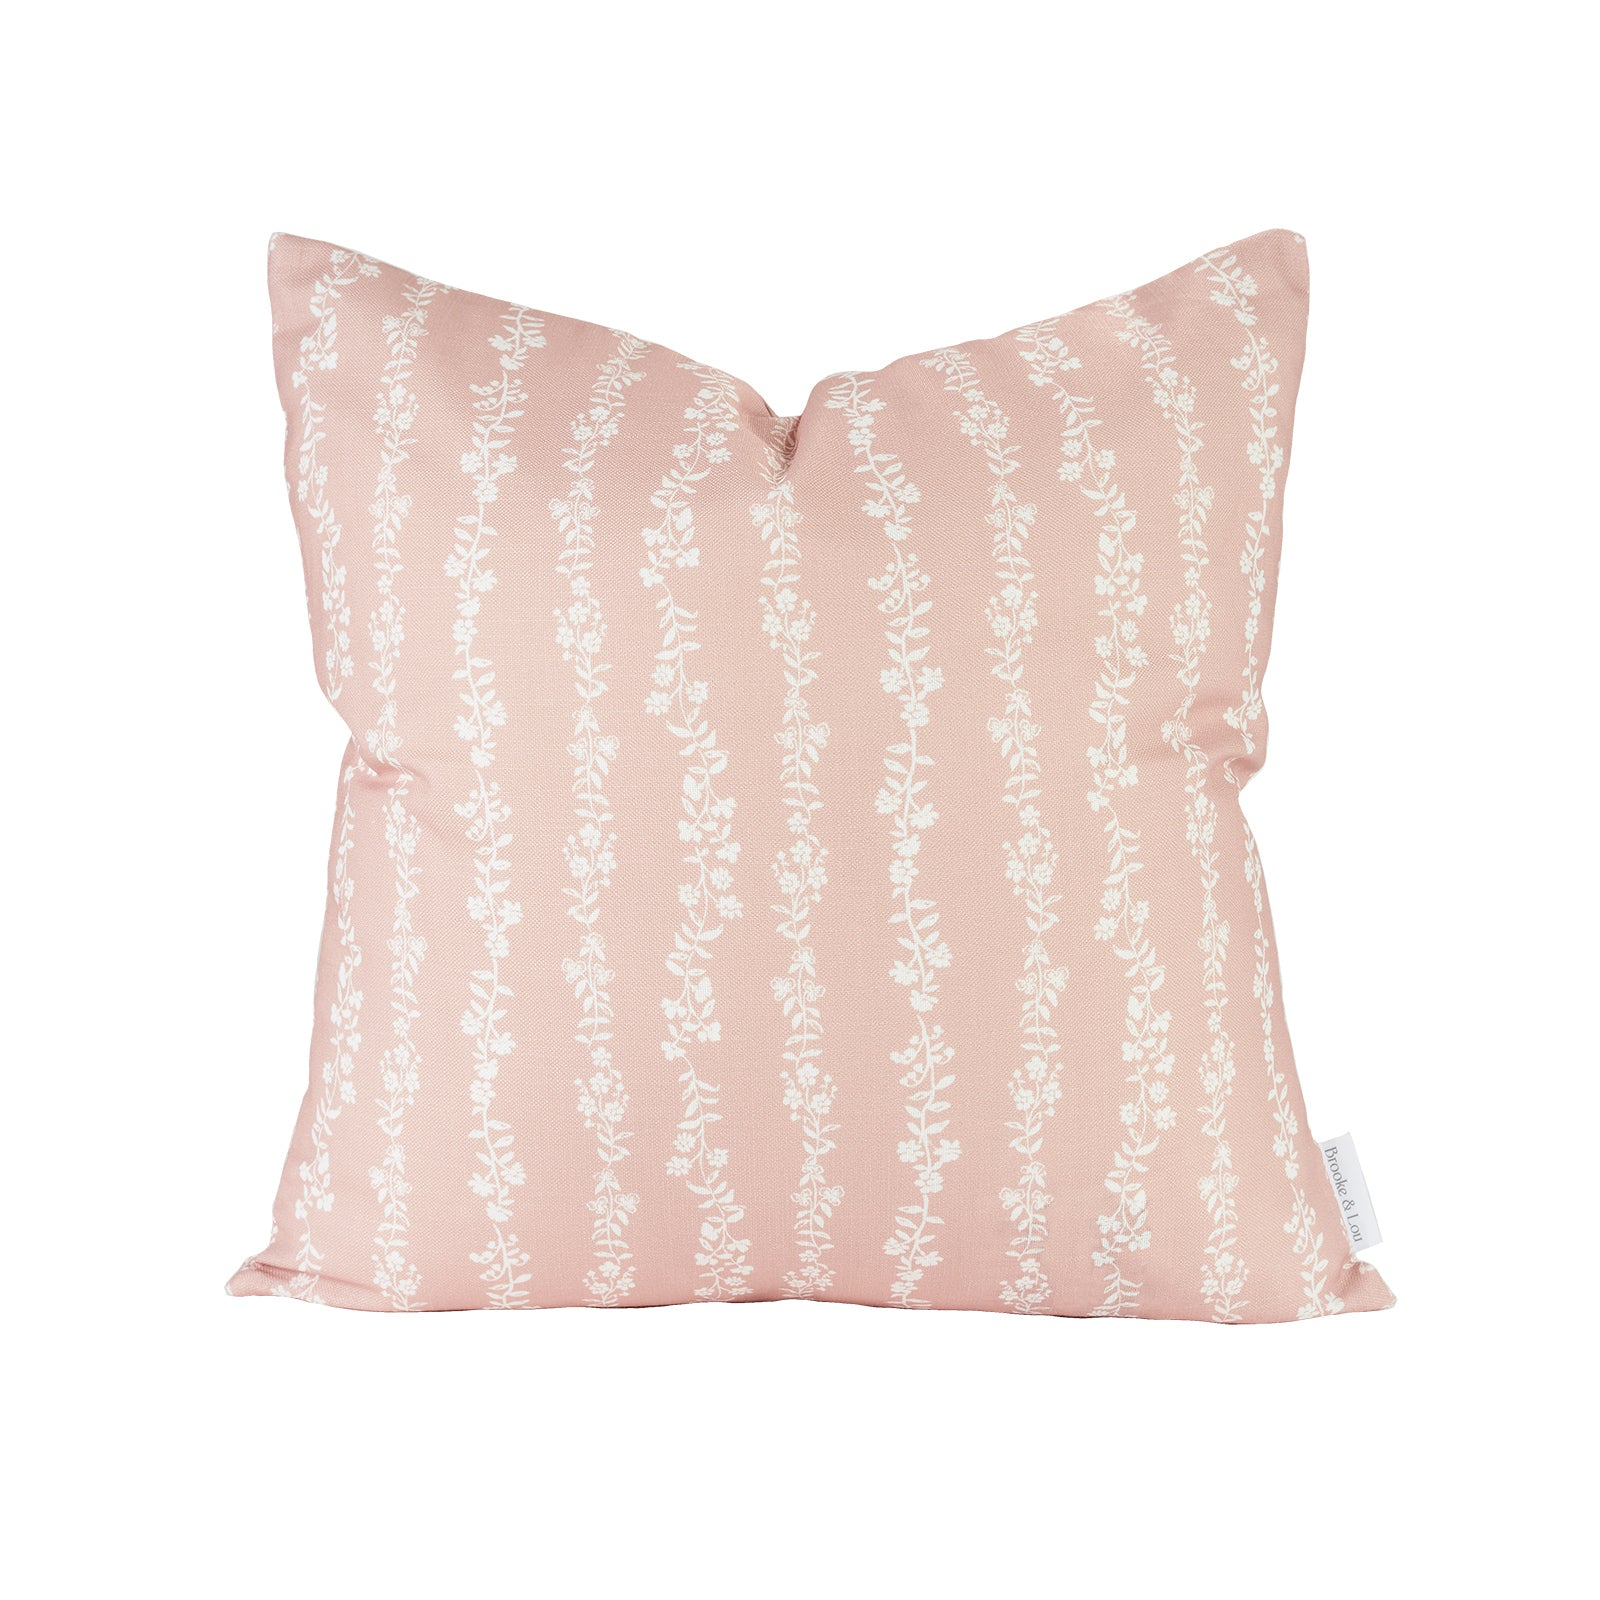 Somerset Pillow in Soft Coral